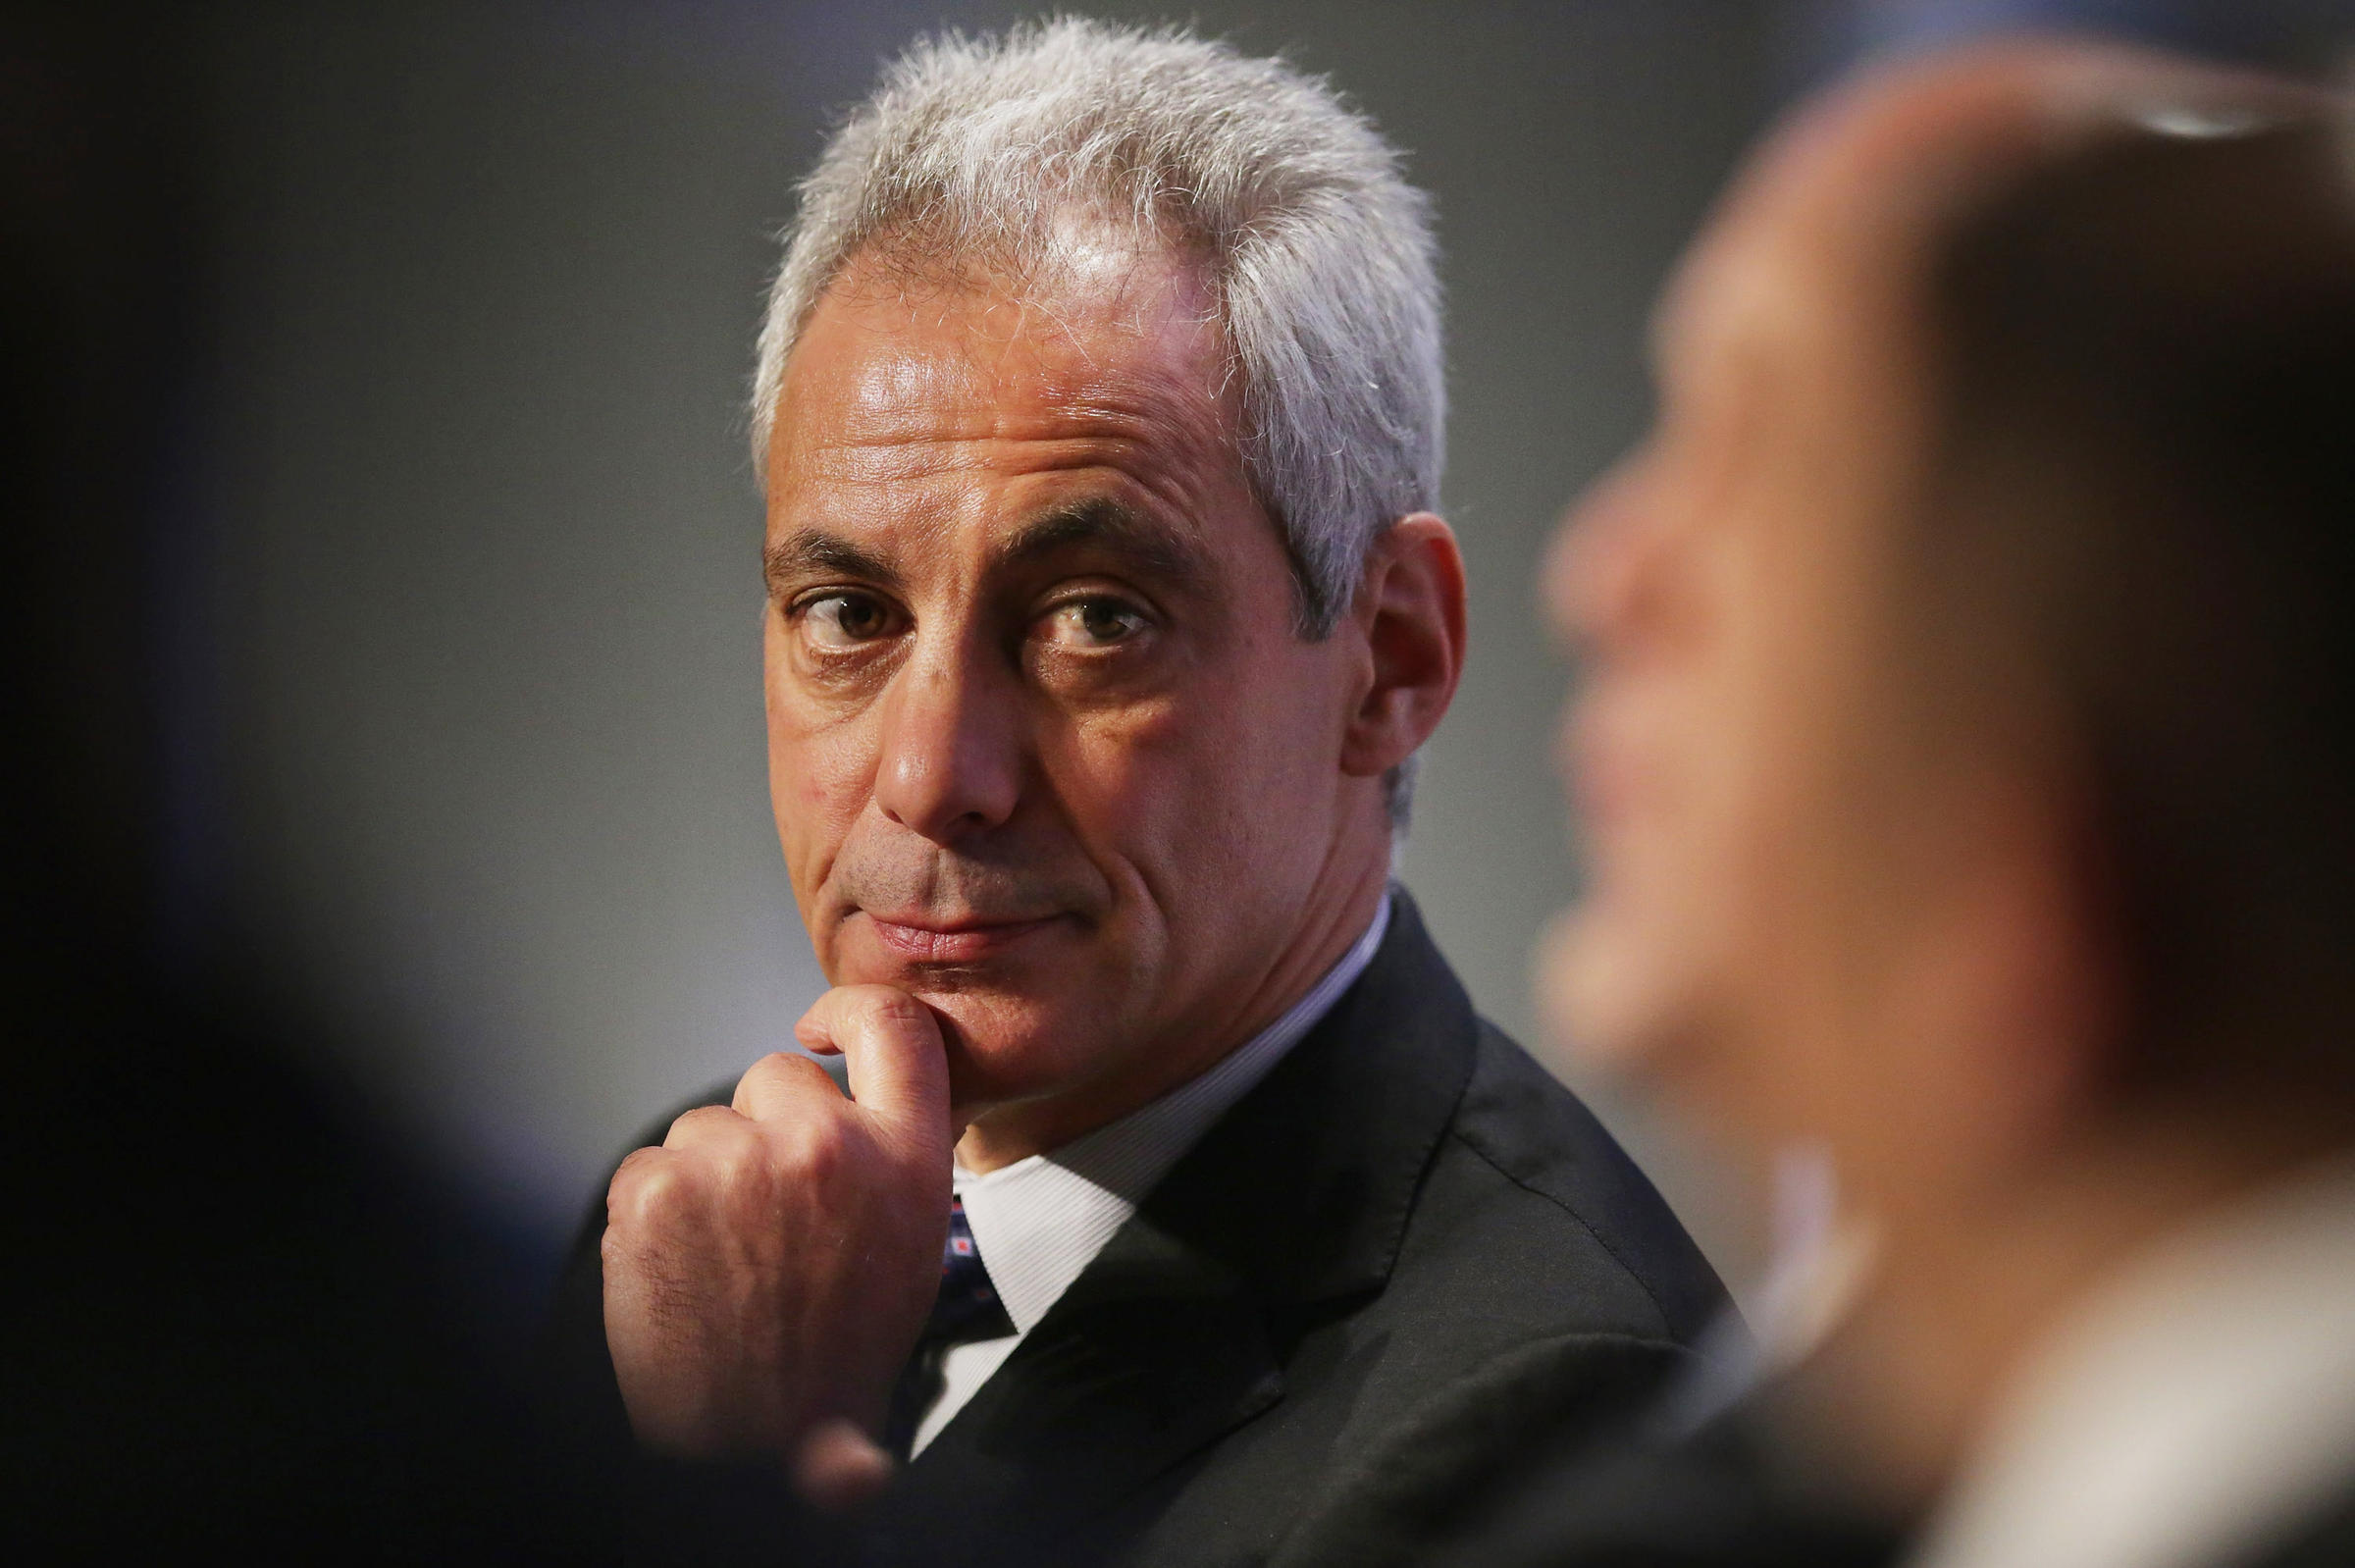 Chicago mayor unveils plan for new police oversight agency